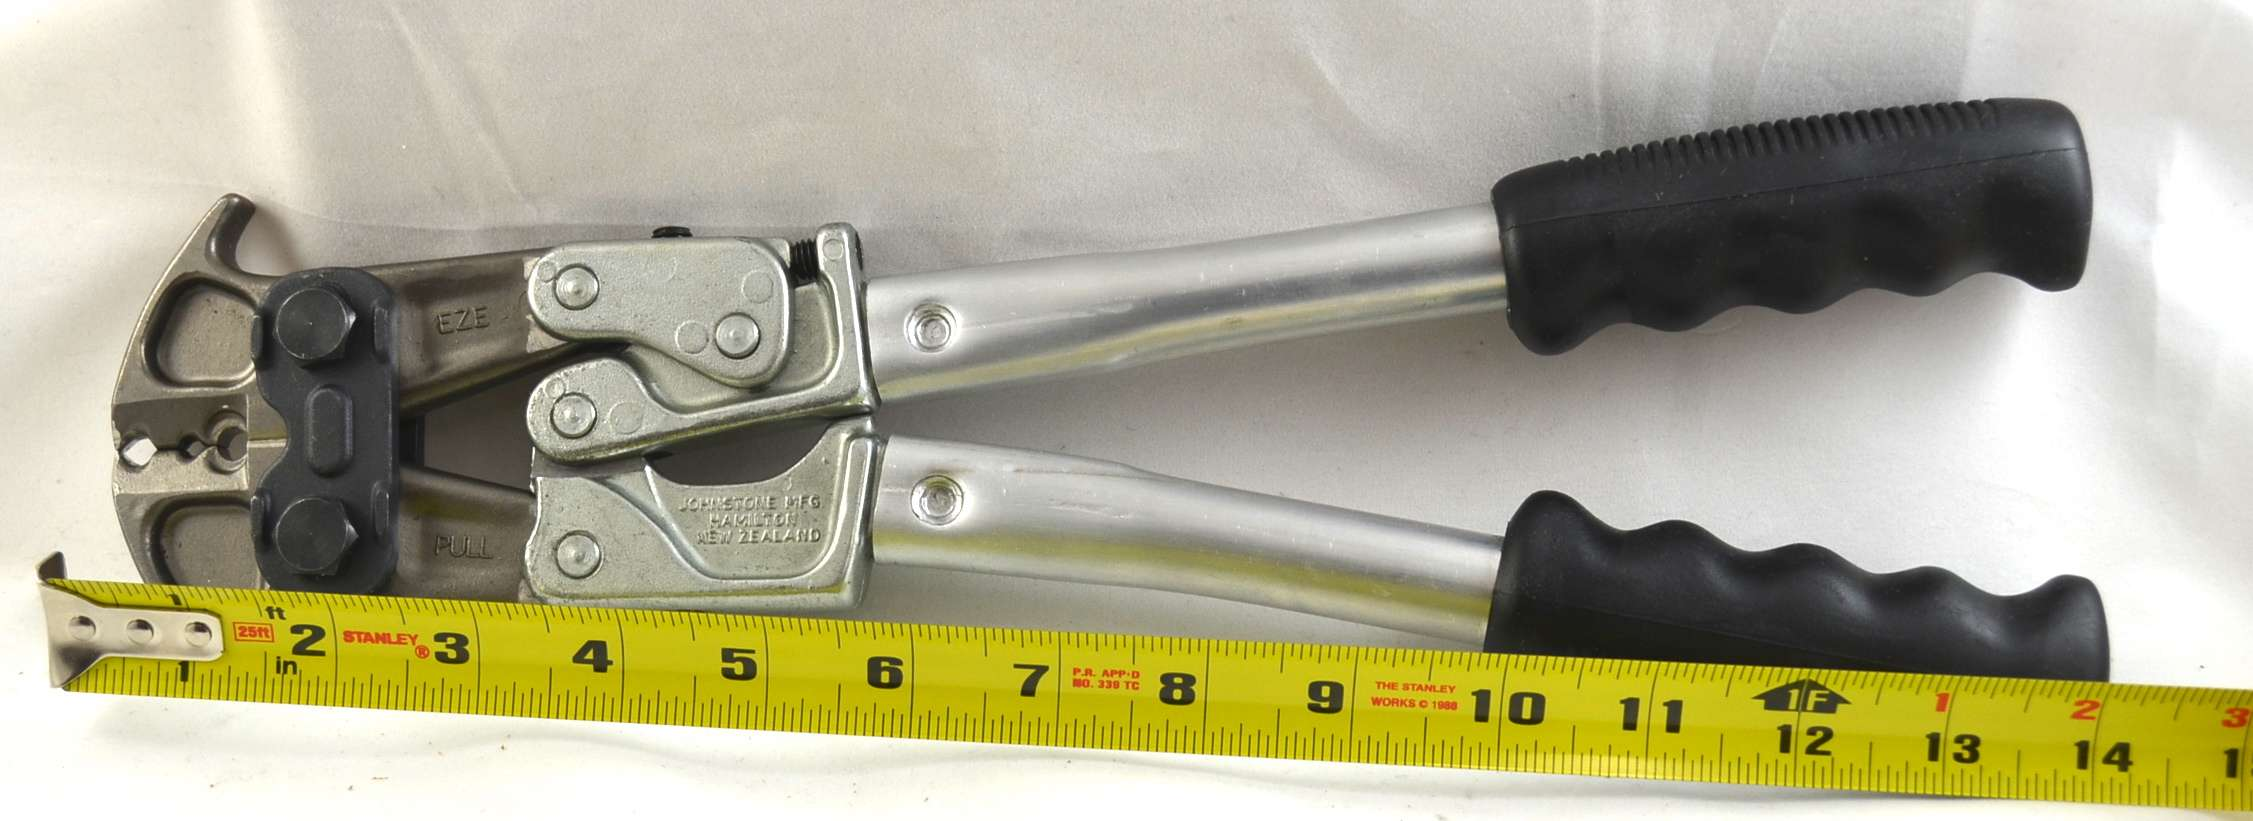 Stay Tuff Fencing Tool 1 Slot Crimp Tool Live Wire Products Inc